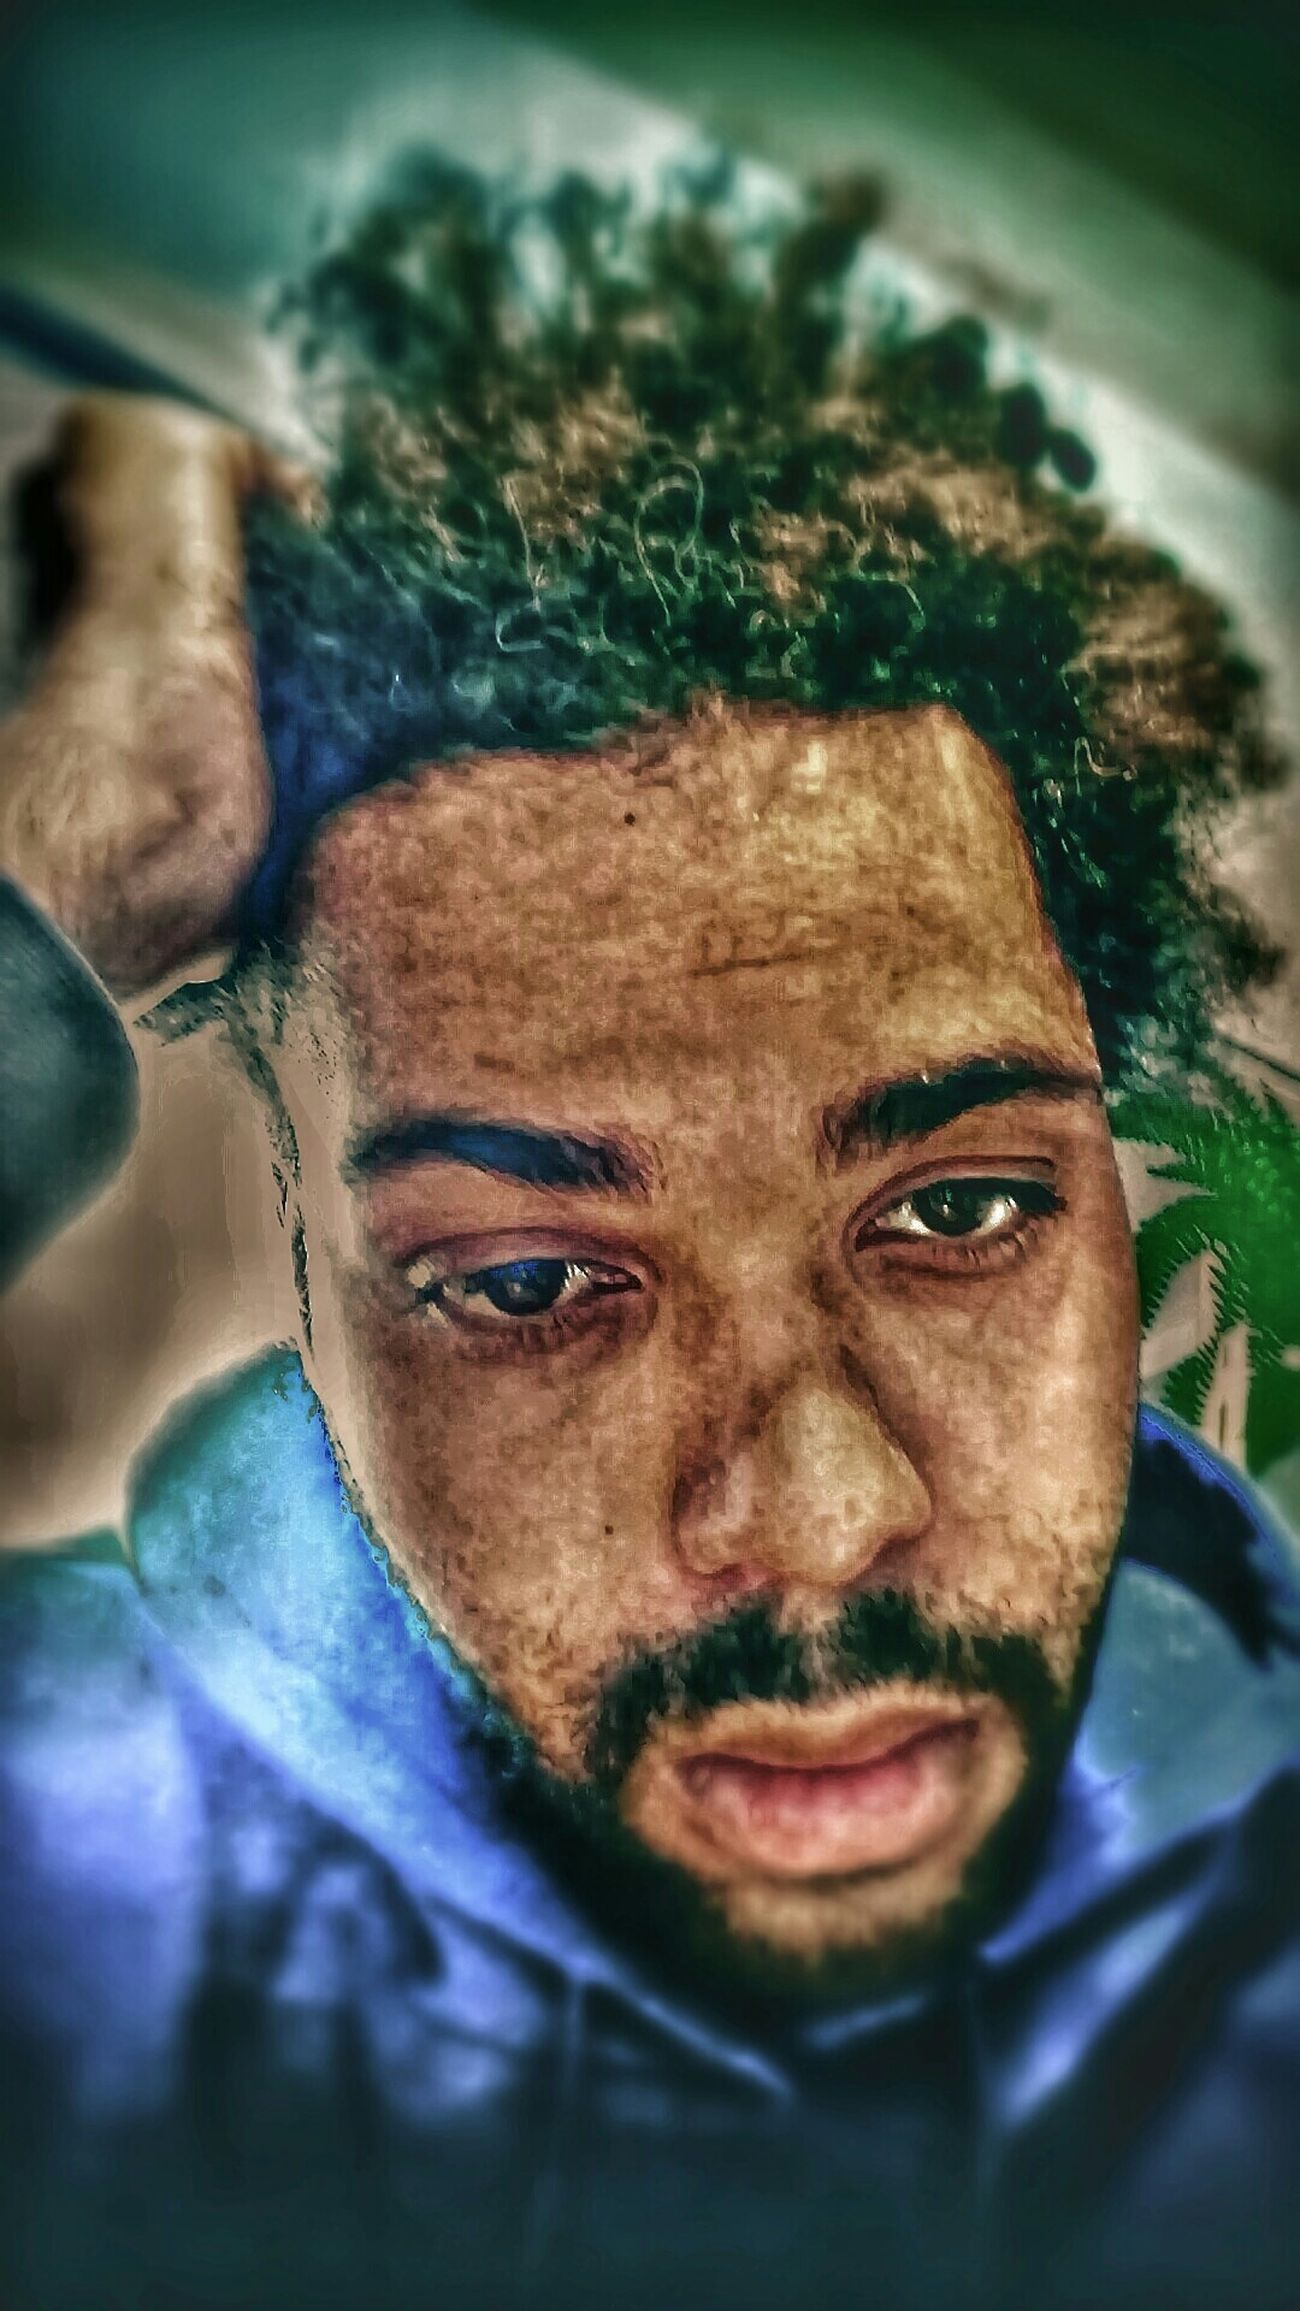 How i see myself right now thru these high eyes Pyschedelic Selfportrait Rustic Style High Bordem  Hair Lifestyle Still Life